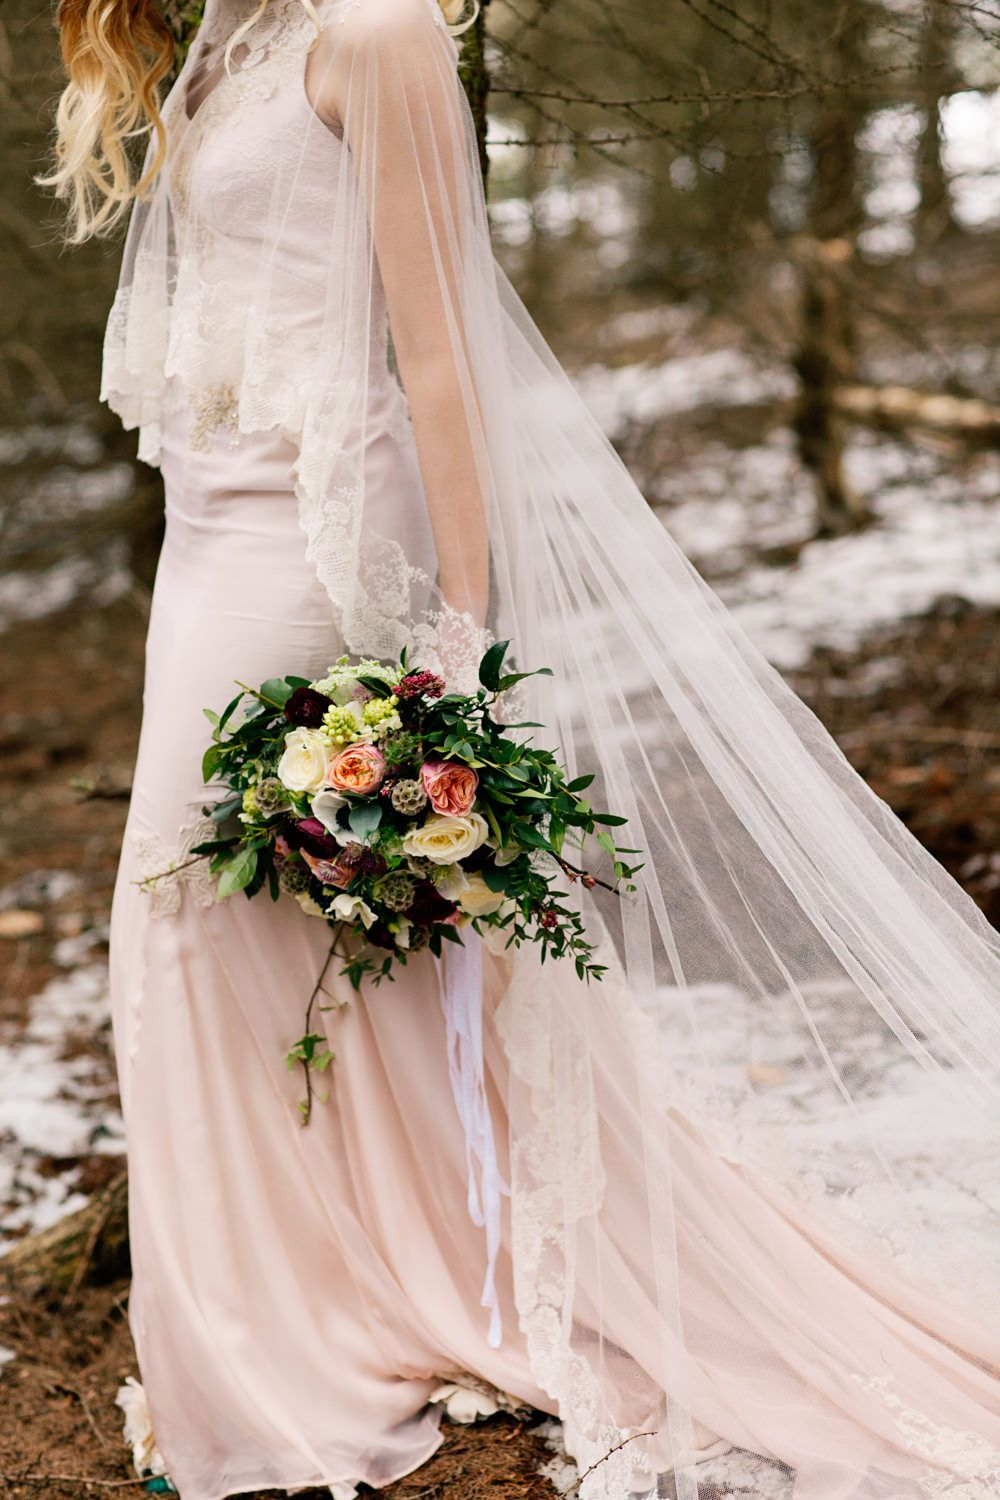 Terry Fox Wedding Dresses For A Winter Bridal Inspiration Shoot In ...